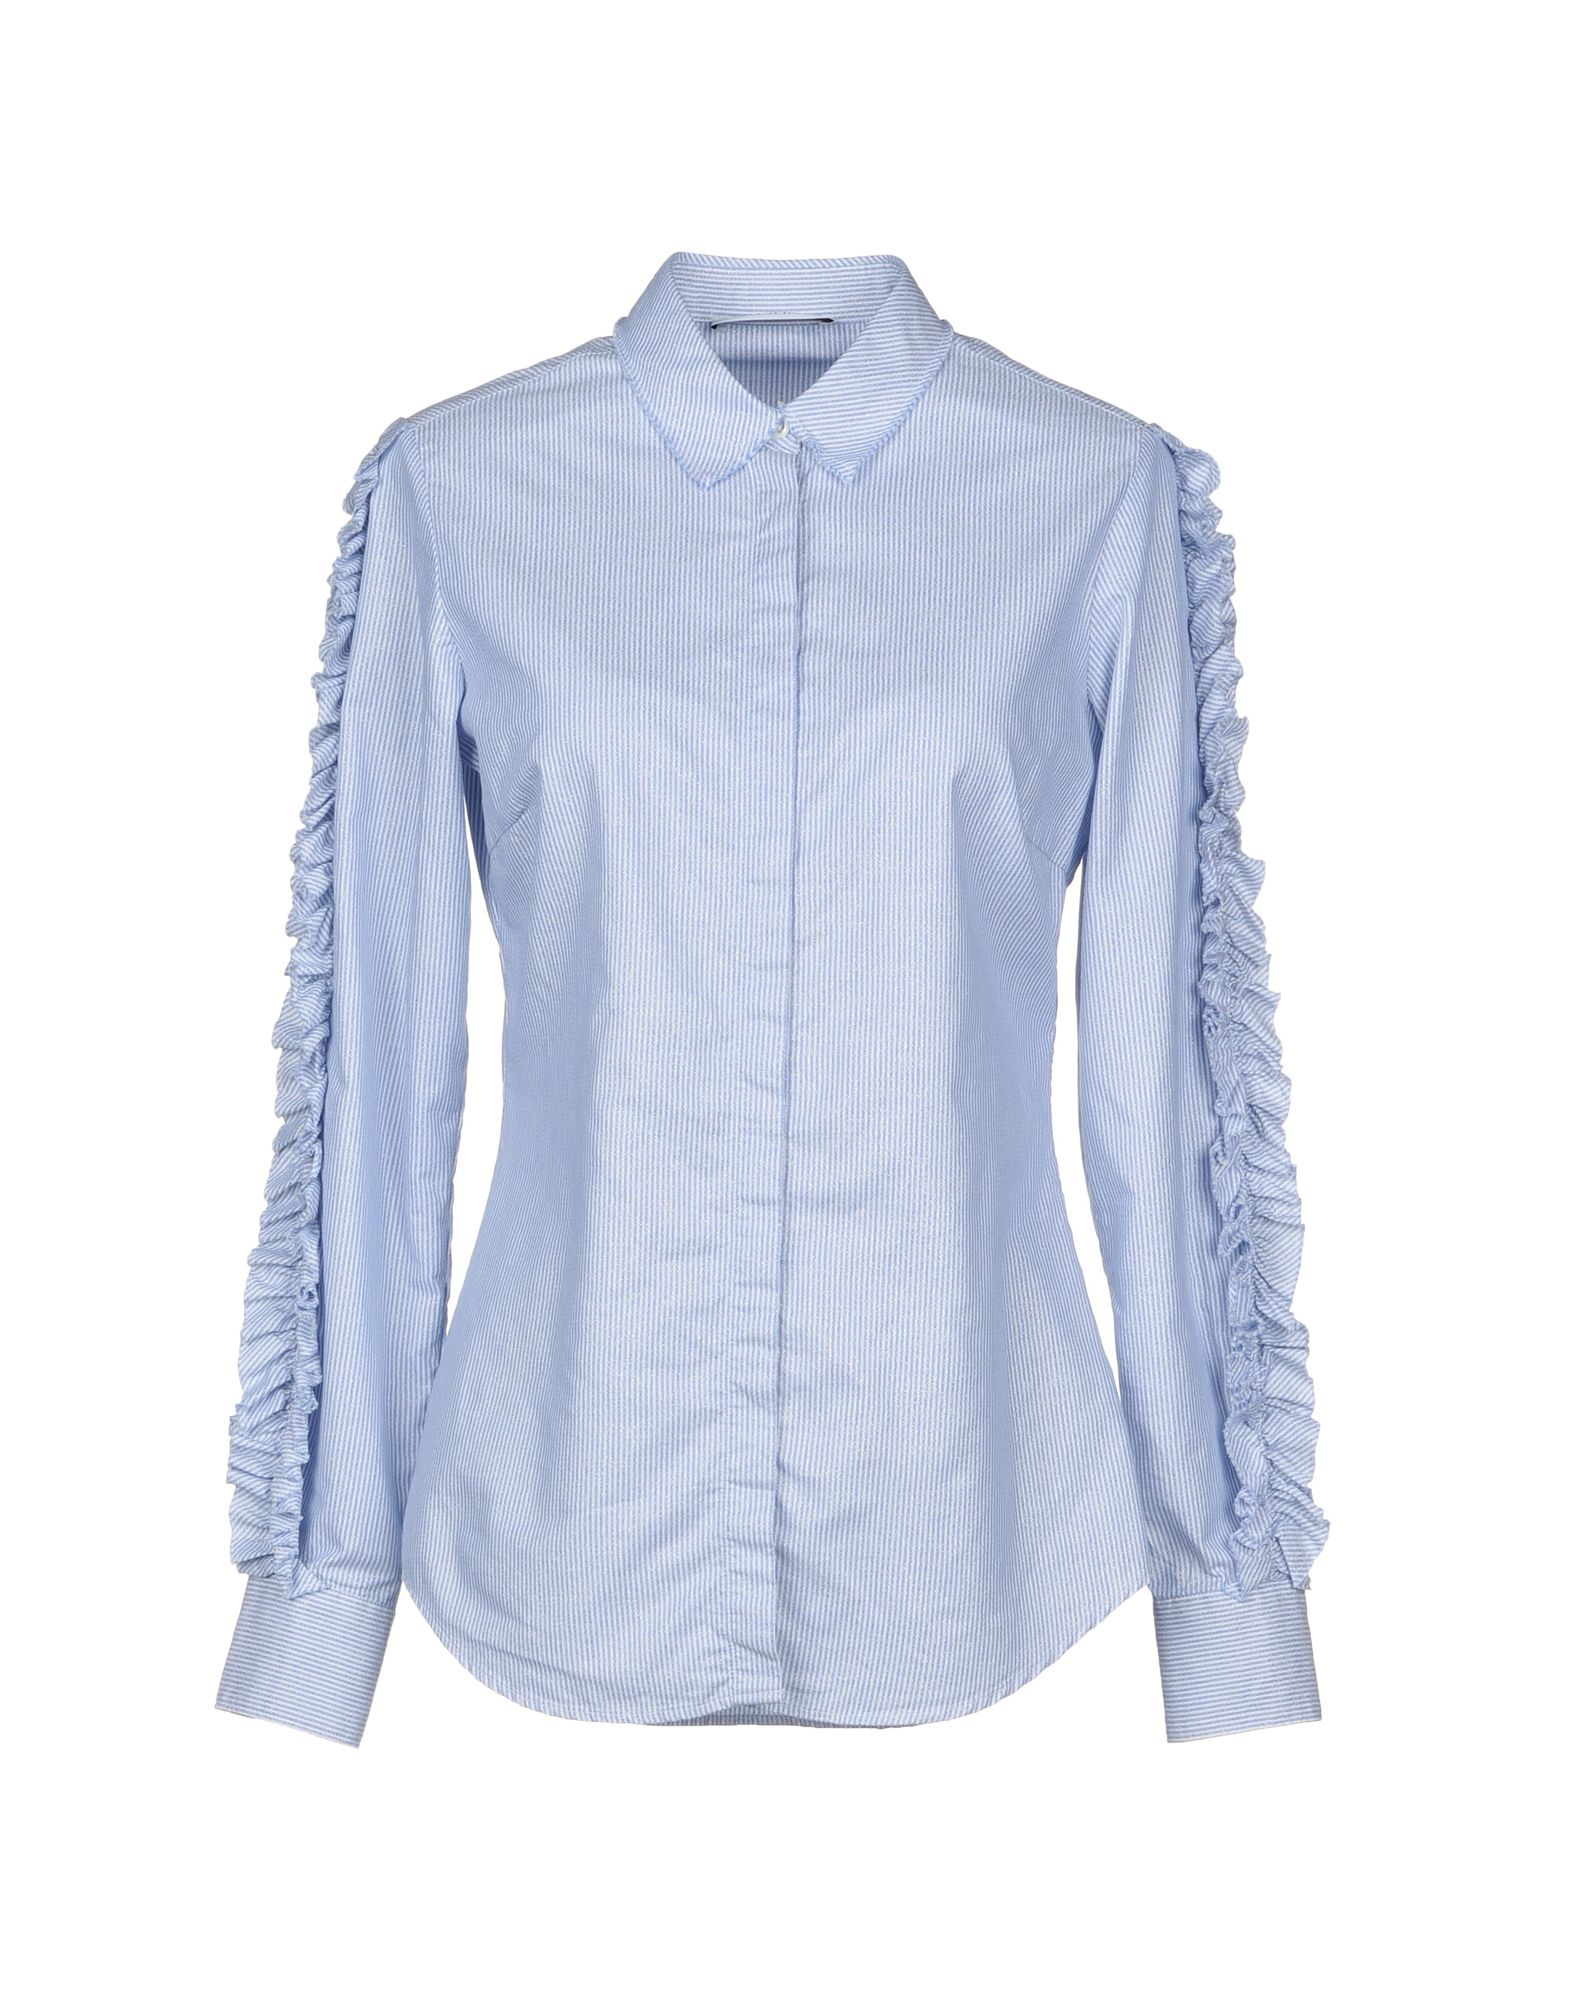 AGLINI Striped Shirt in Sky Blue